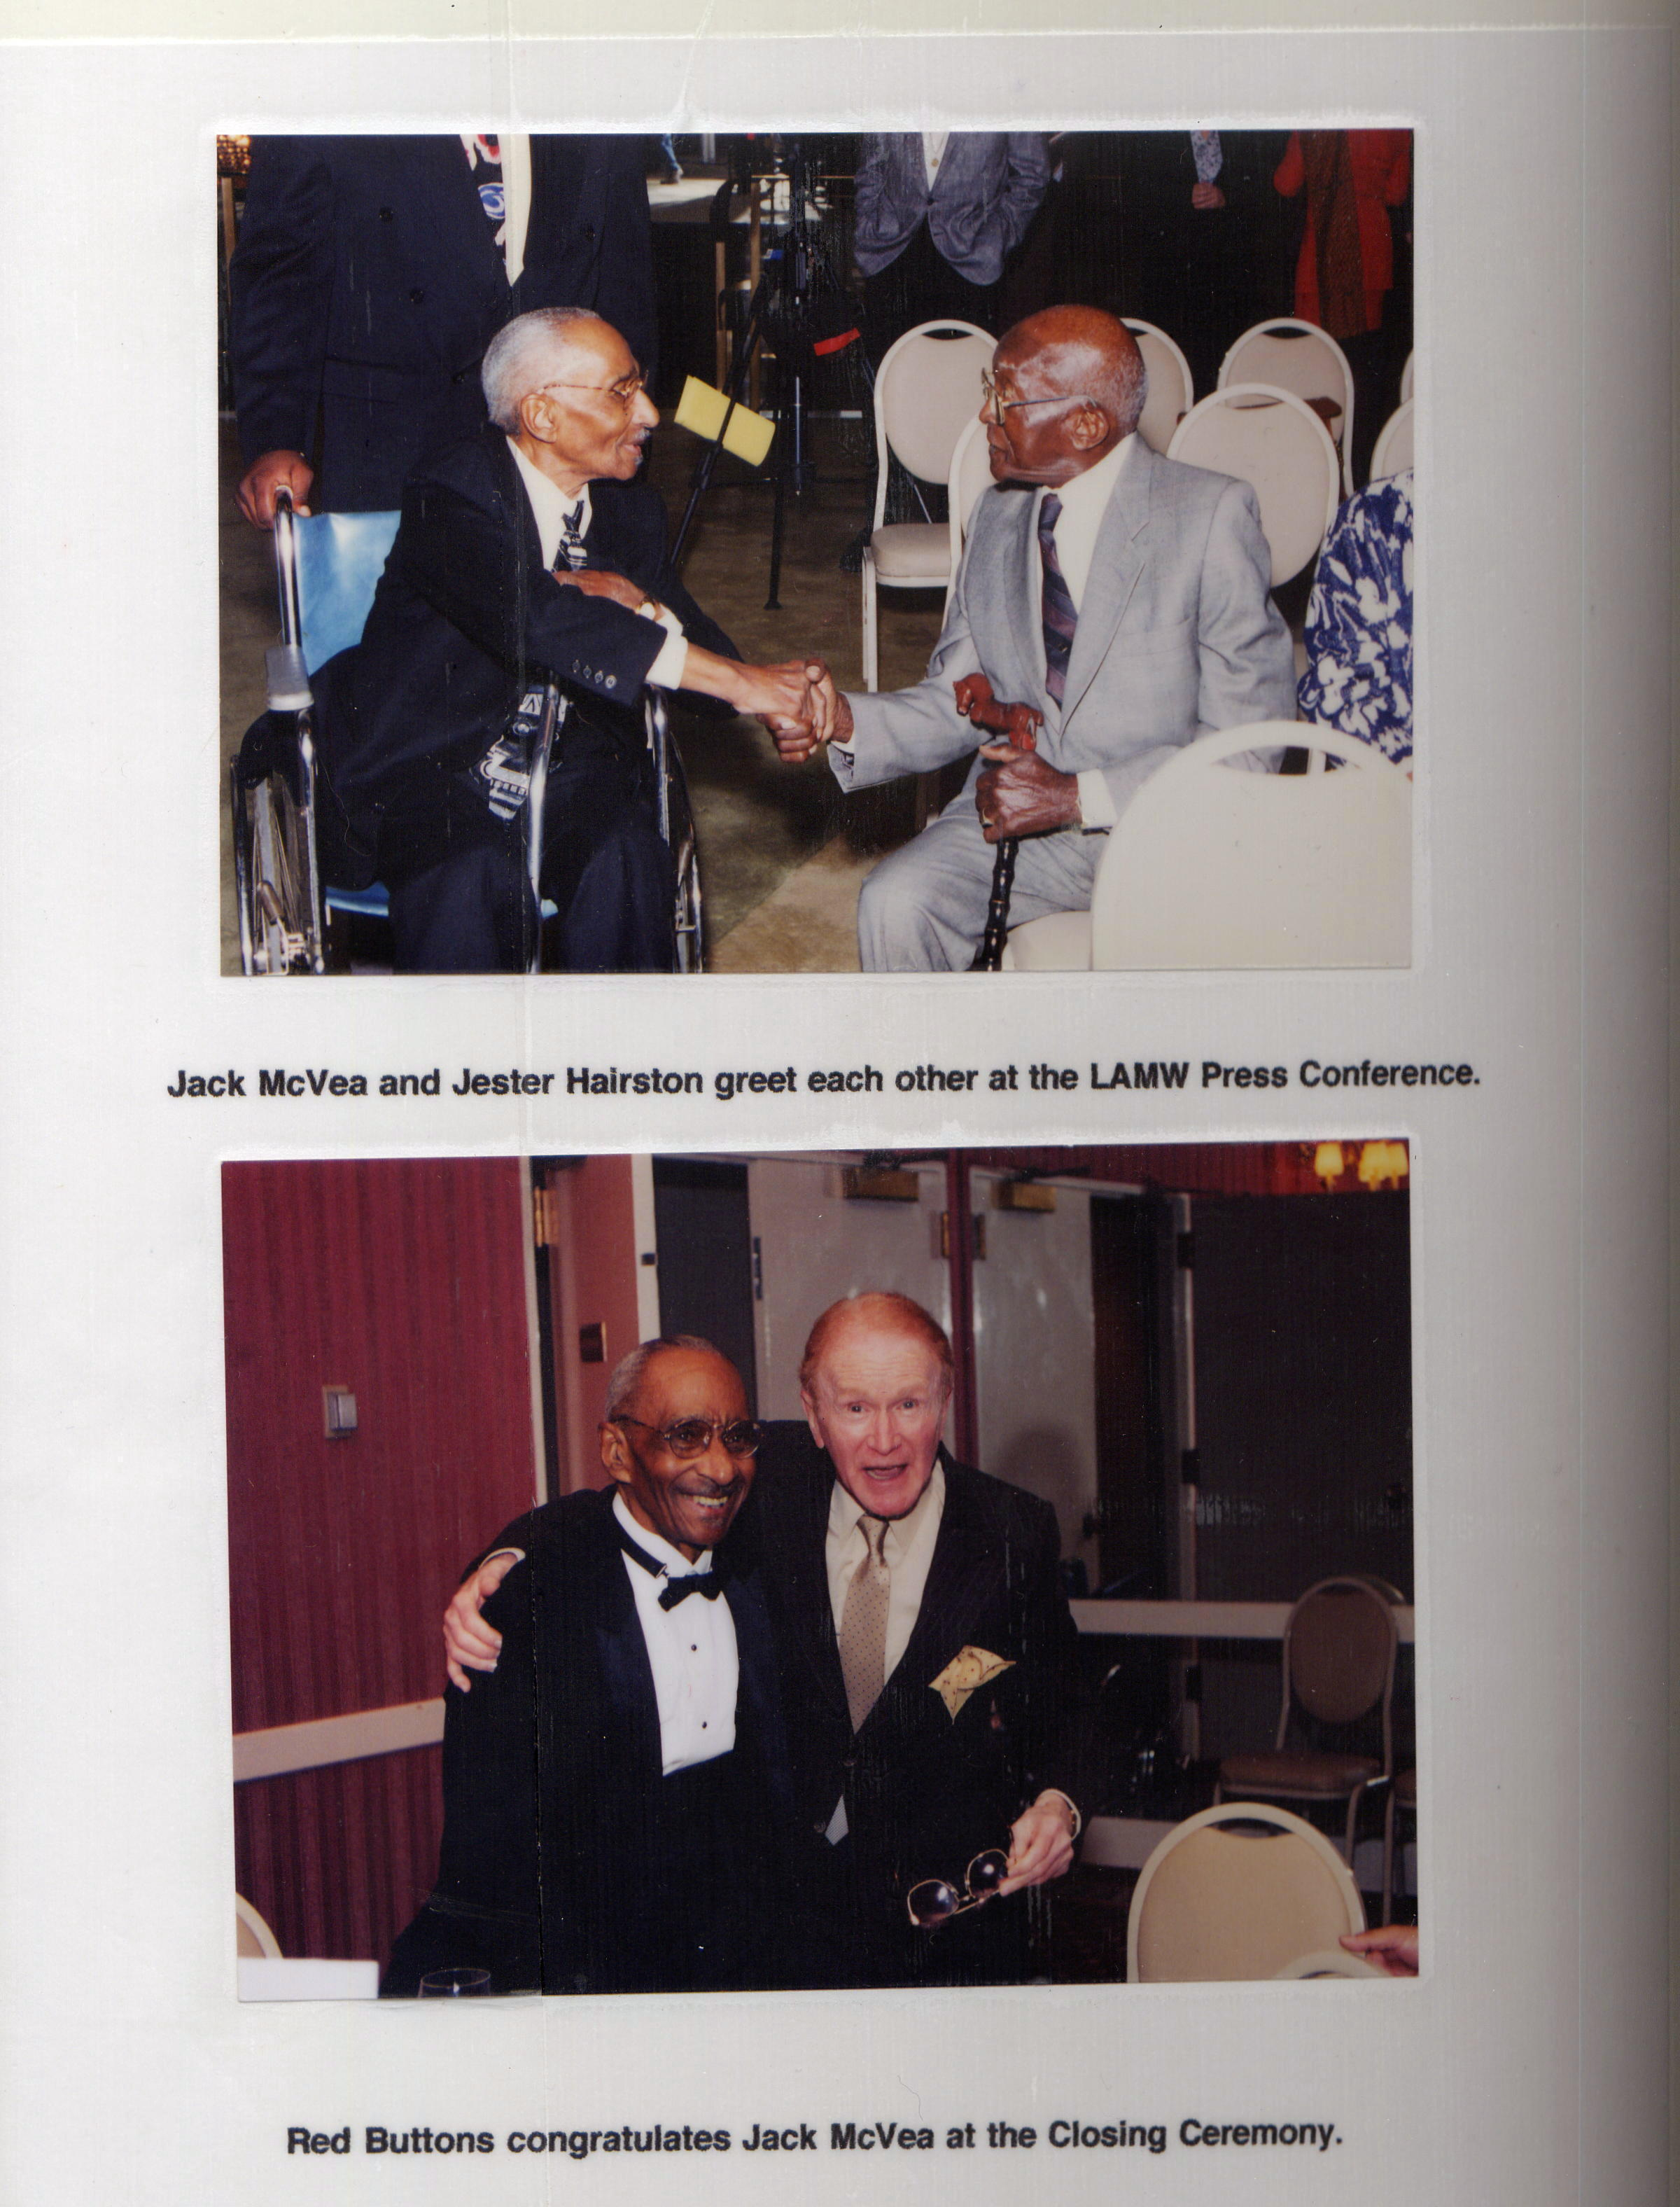 LAMW Honorees Red Buttons, Jack McVea and Jester Hairston